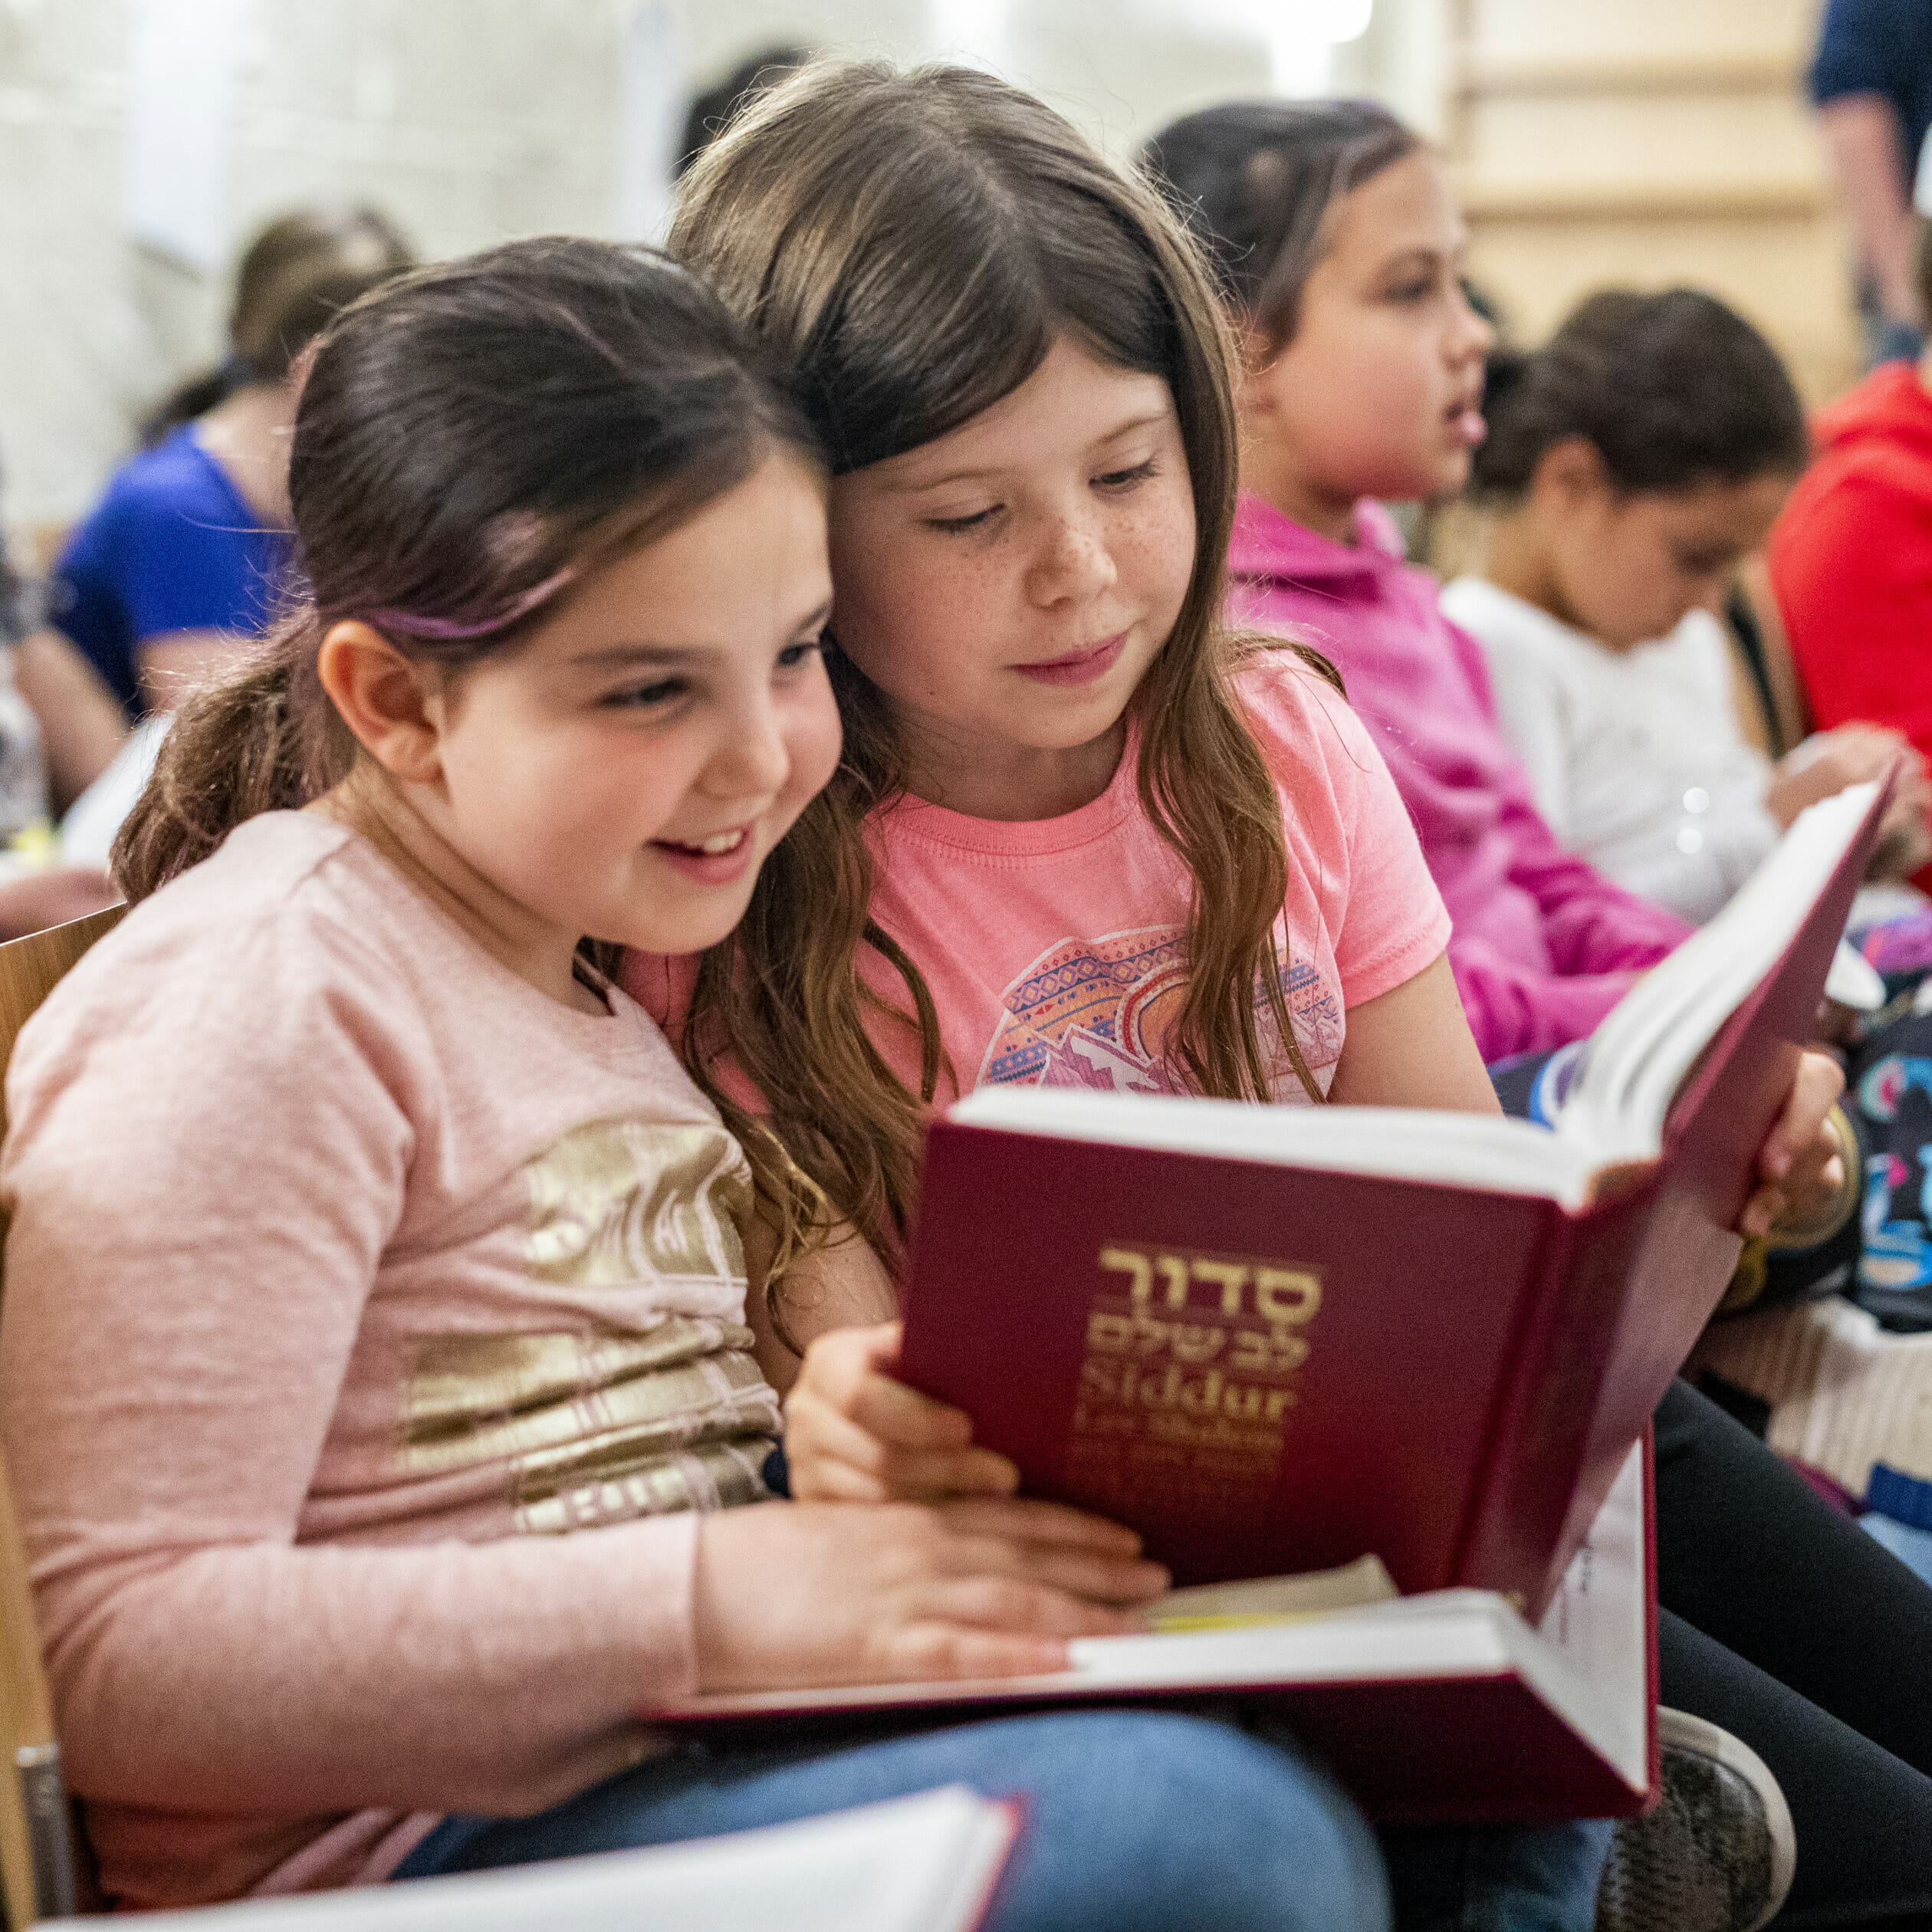 two young girls reading siddur together